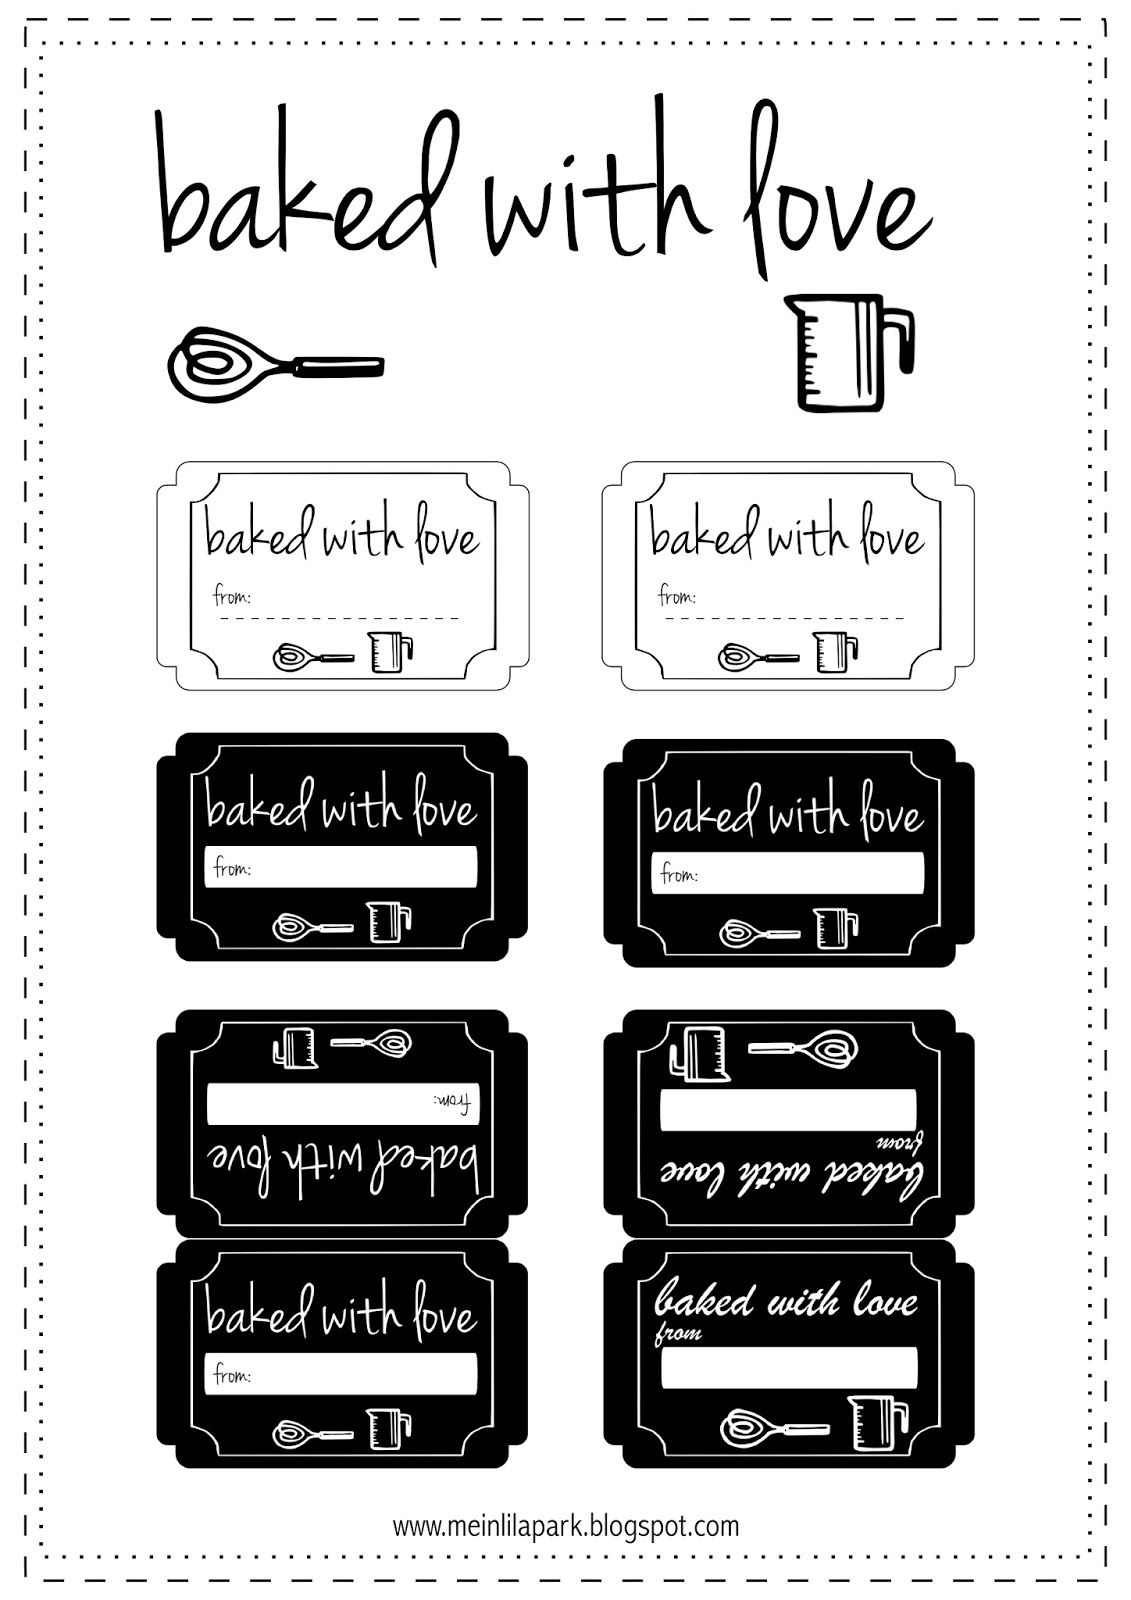 picture about Jar of Nothing Printable Label Free called absolutely free printable baked with appreciate tags - ausdruckbare Etiketten